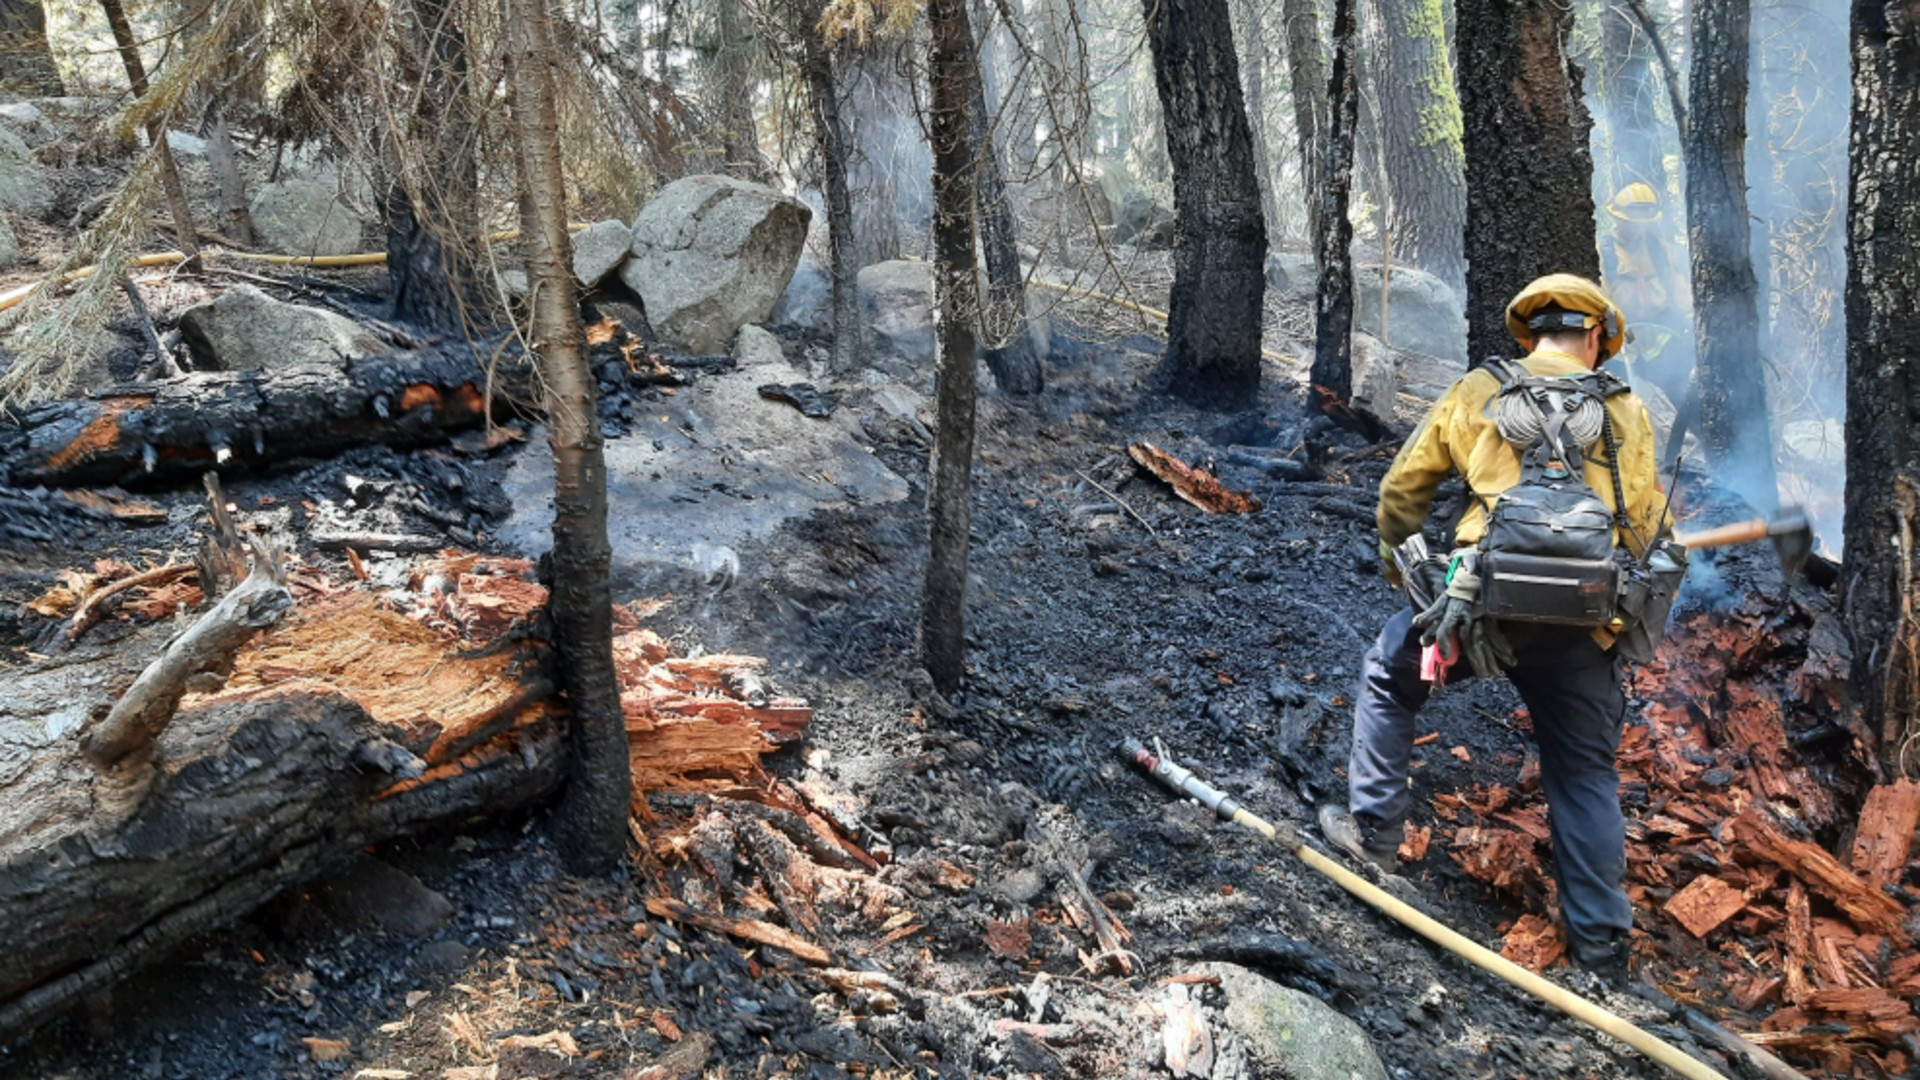 The El Dorado County Sheriff's Office released this photo of a firefighter putting out hot spots on a suspected arson fire near South Lake Tahoe.